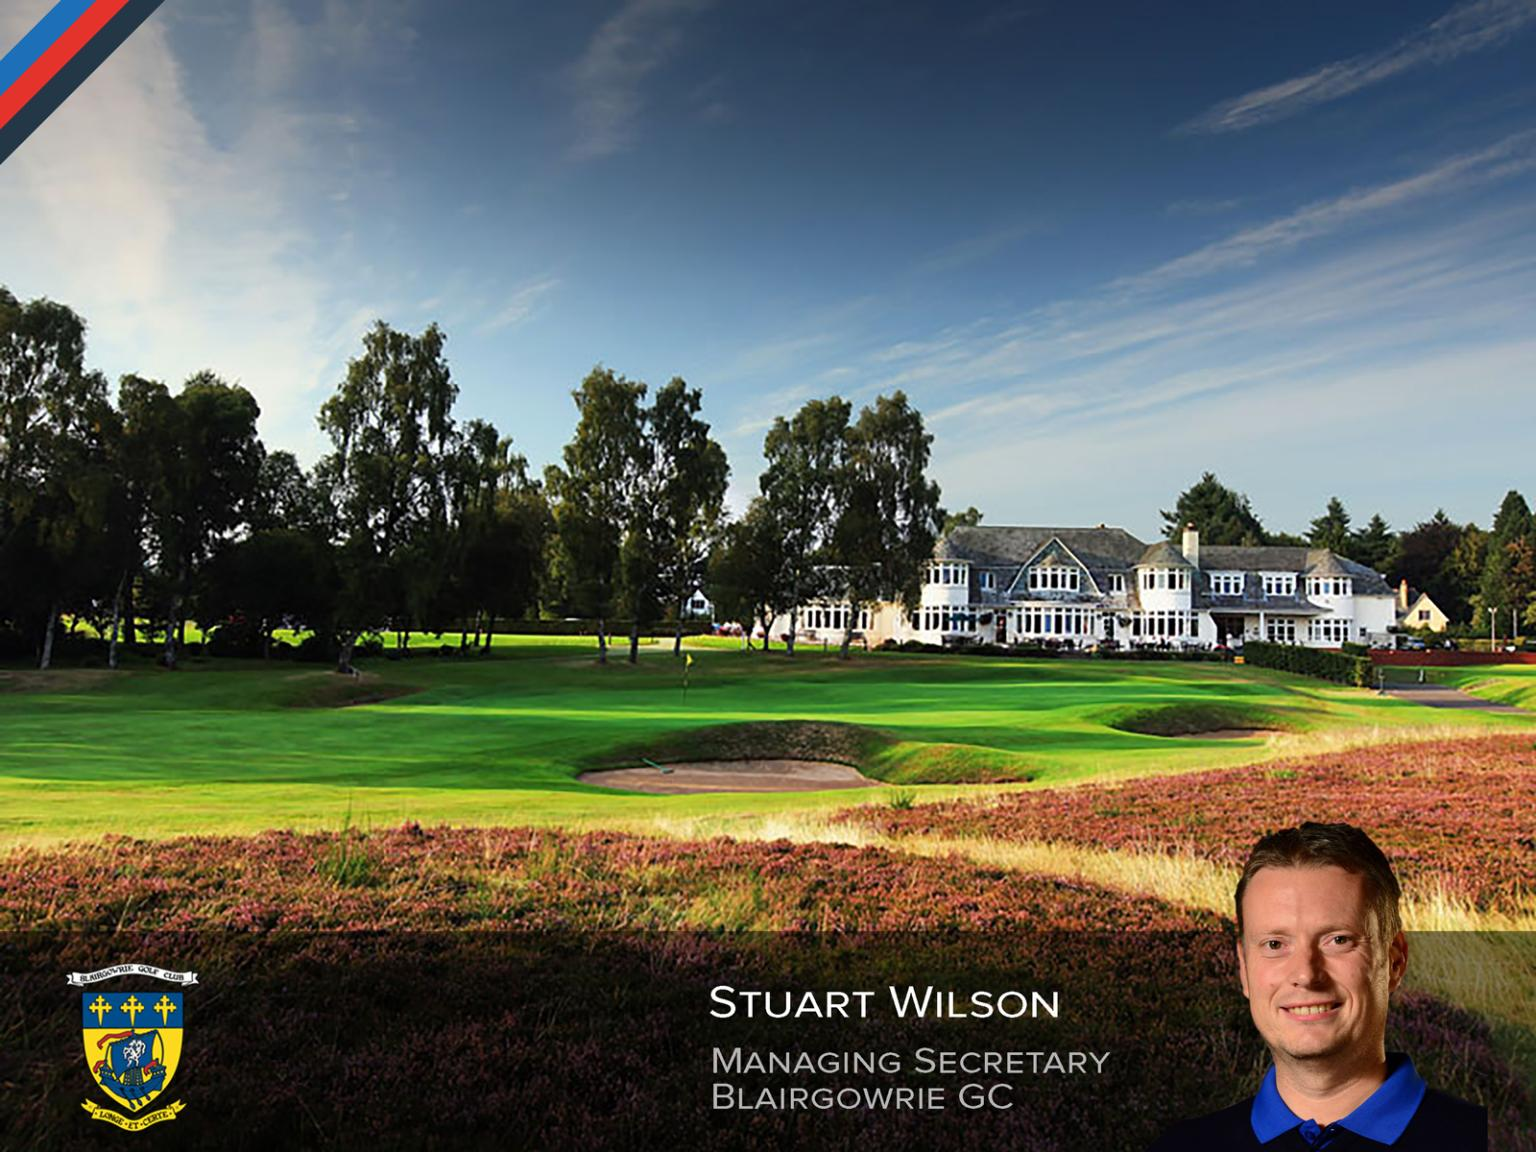 Stuart Wilson Appointed at Blairgowrie Golf Club